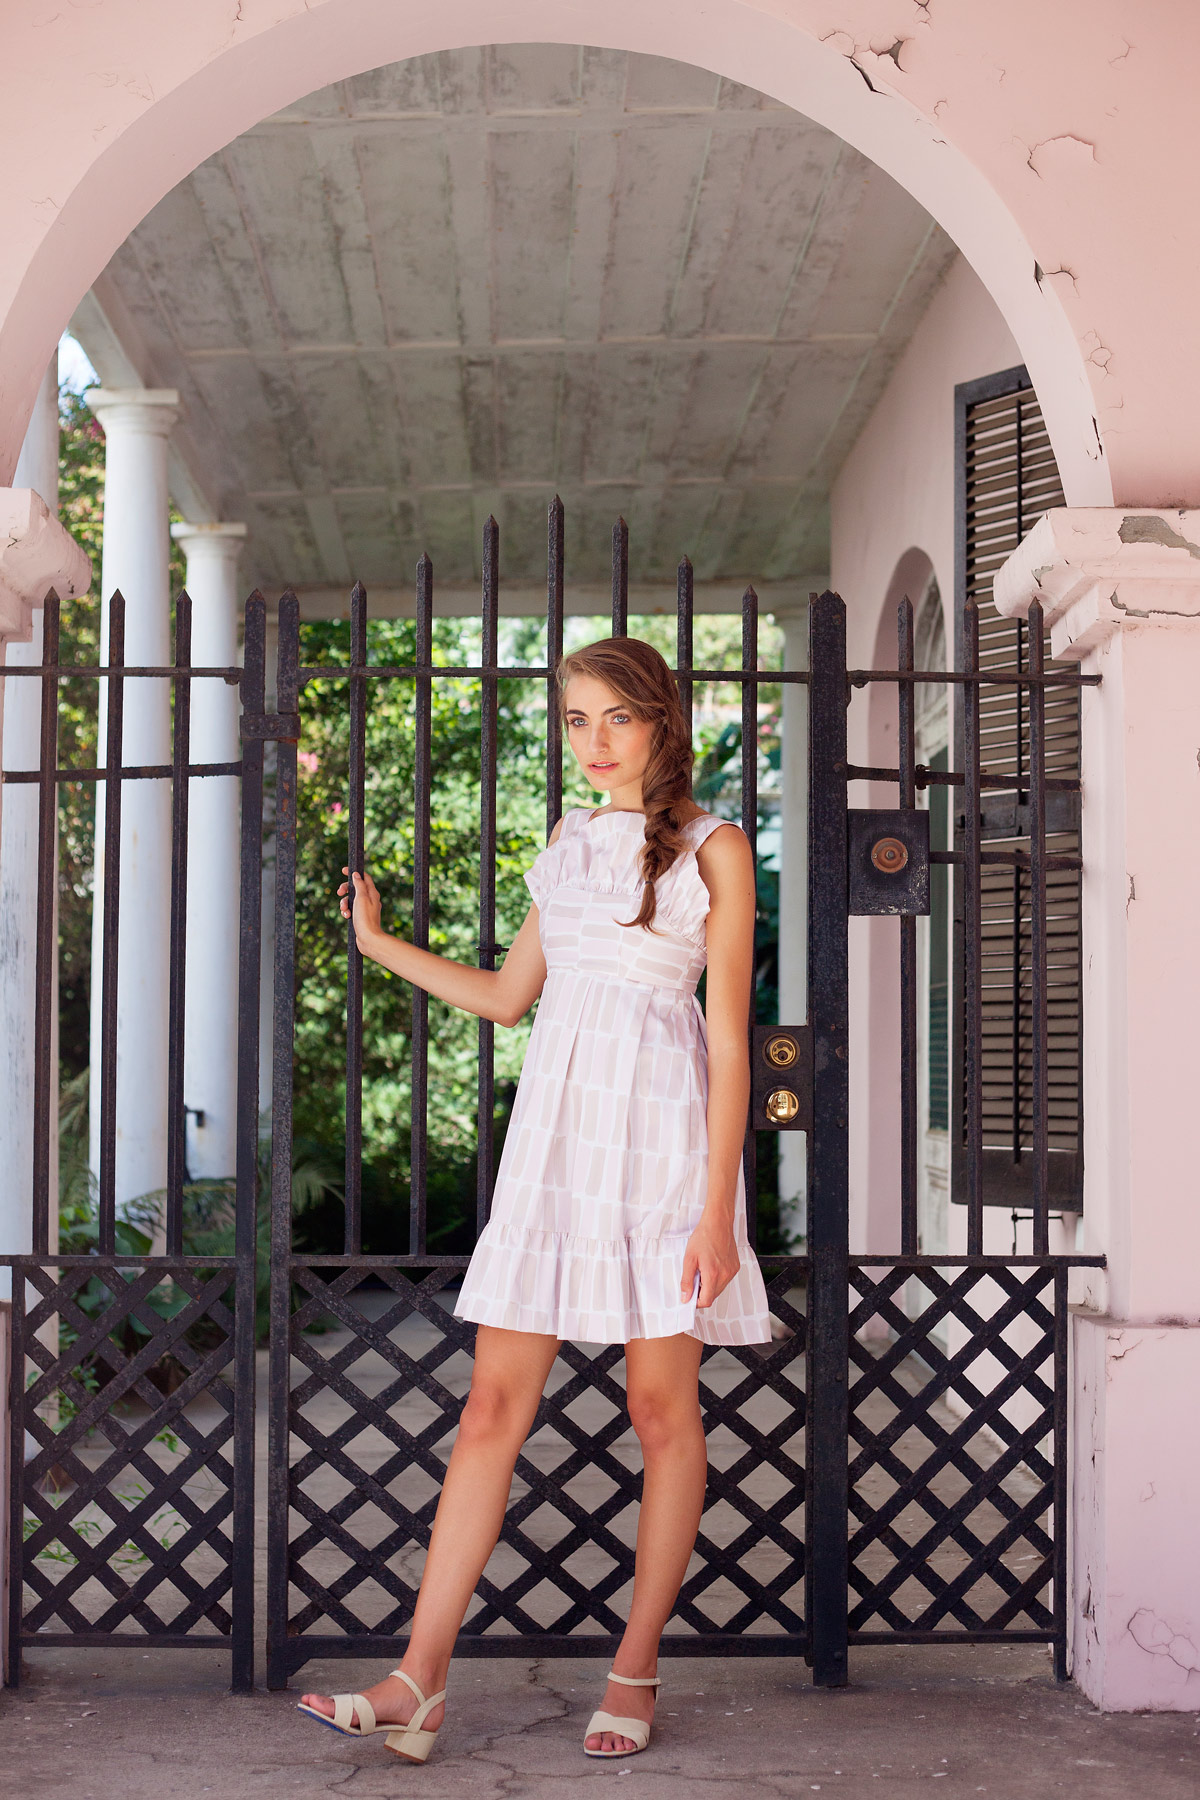 margaret-wright-fashion-photographer-charleston-25